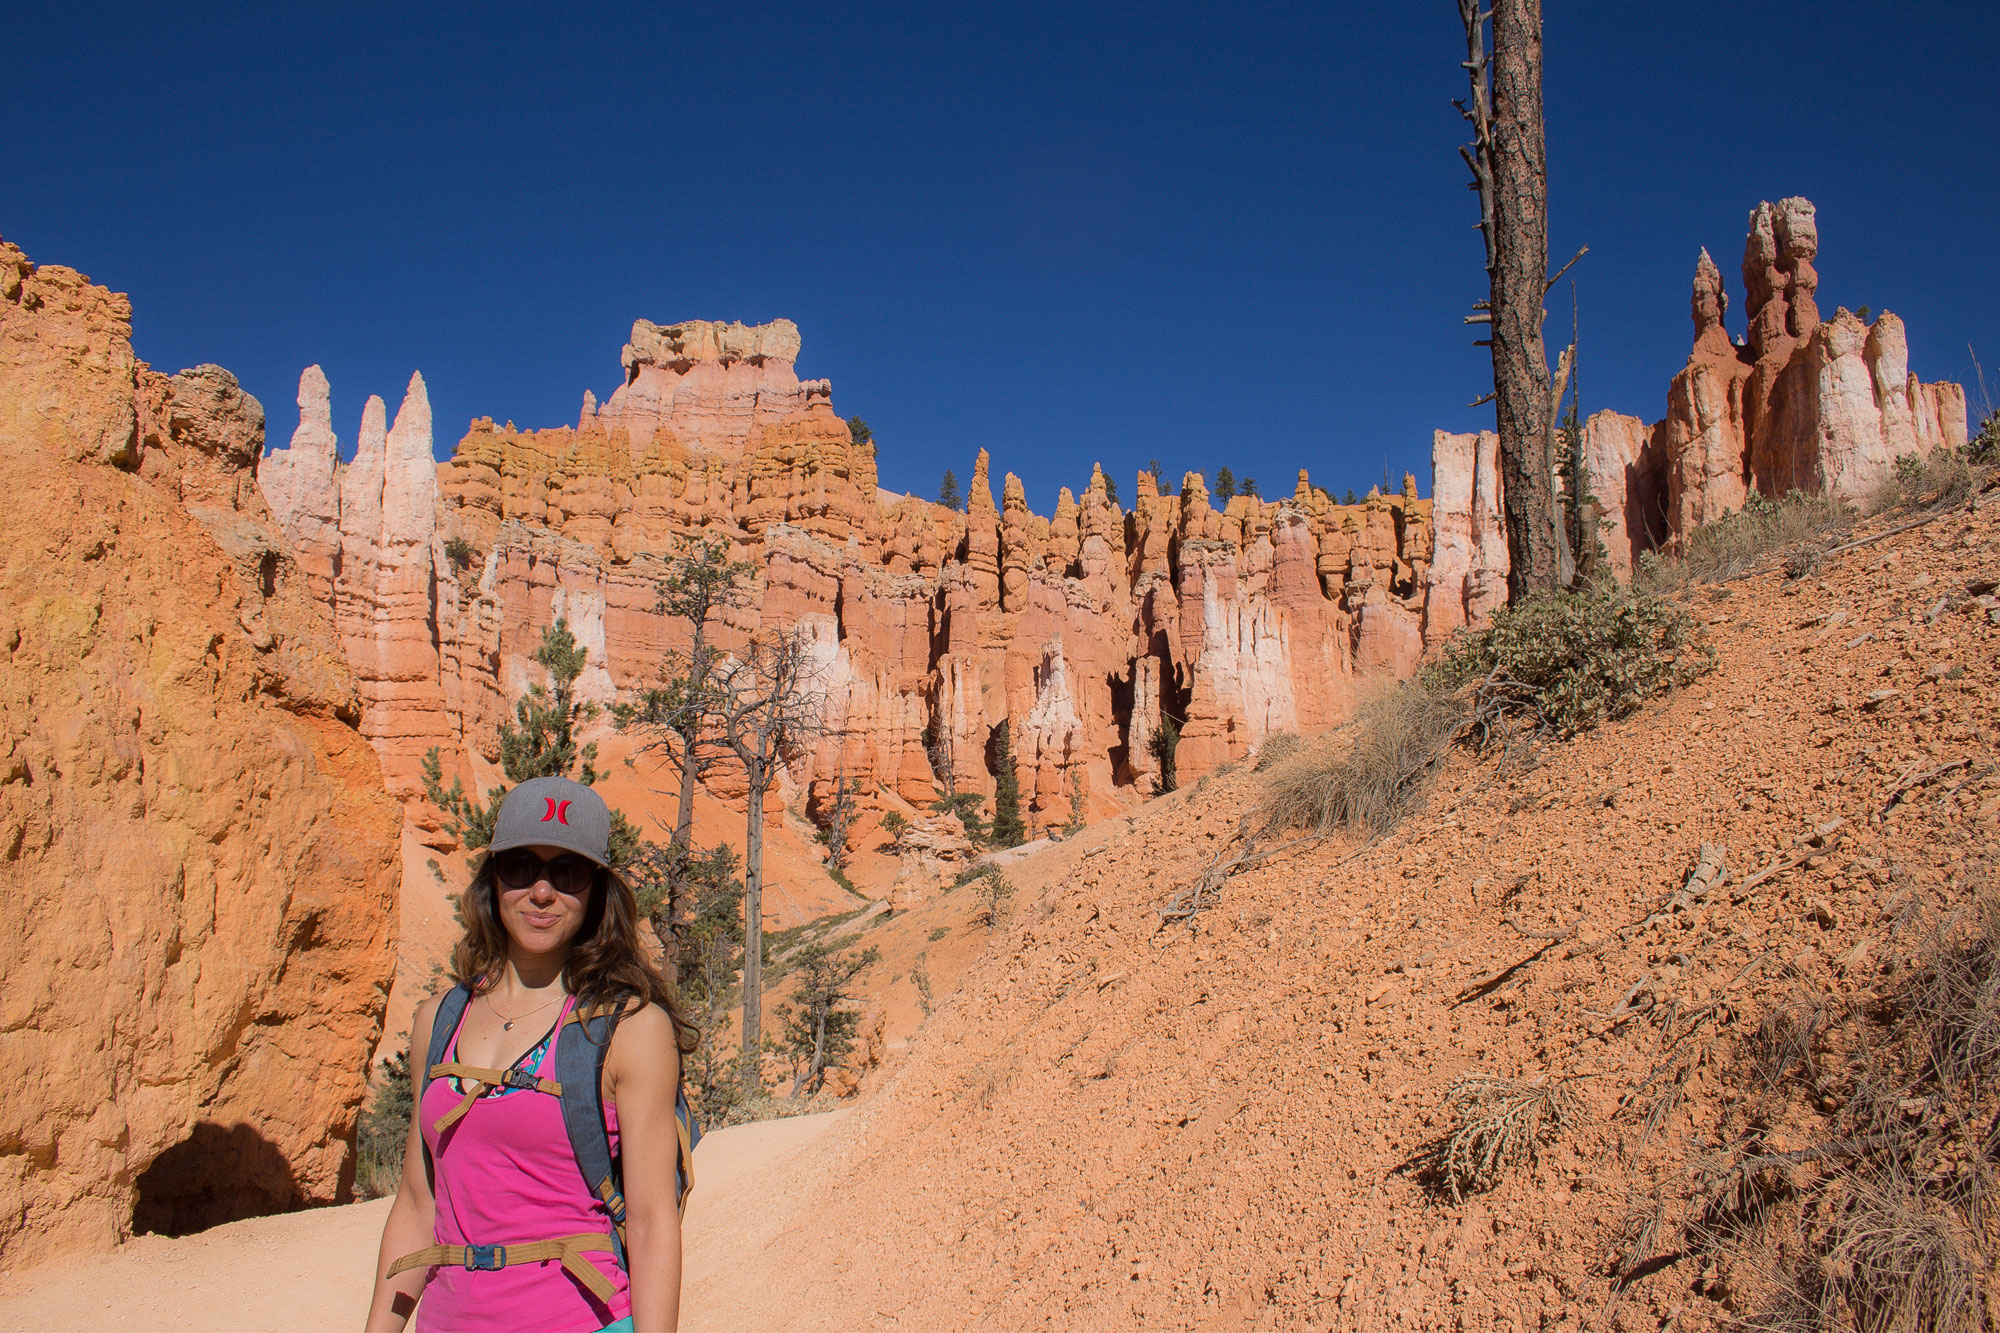 Amy-on-the-Queen's-Garden-Trail,-Bryce-Canyon-National-Park